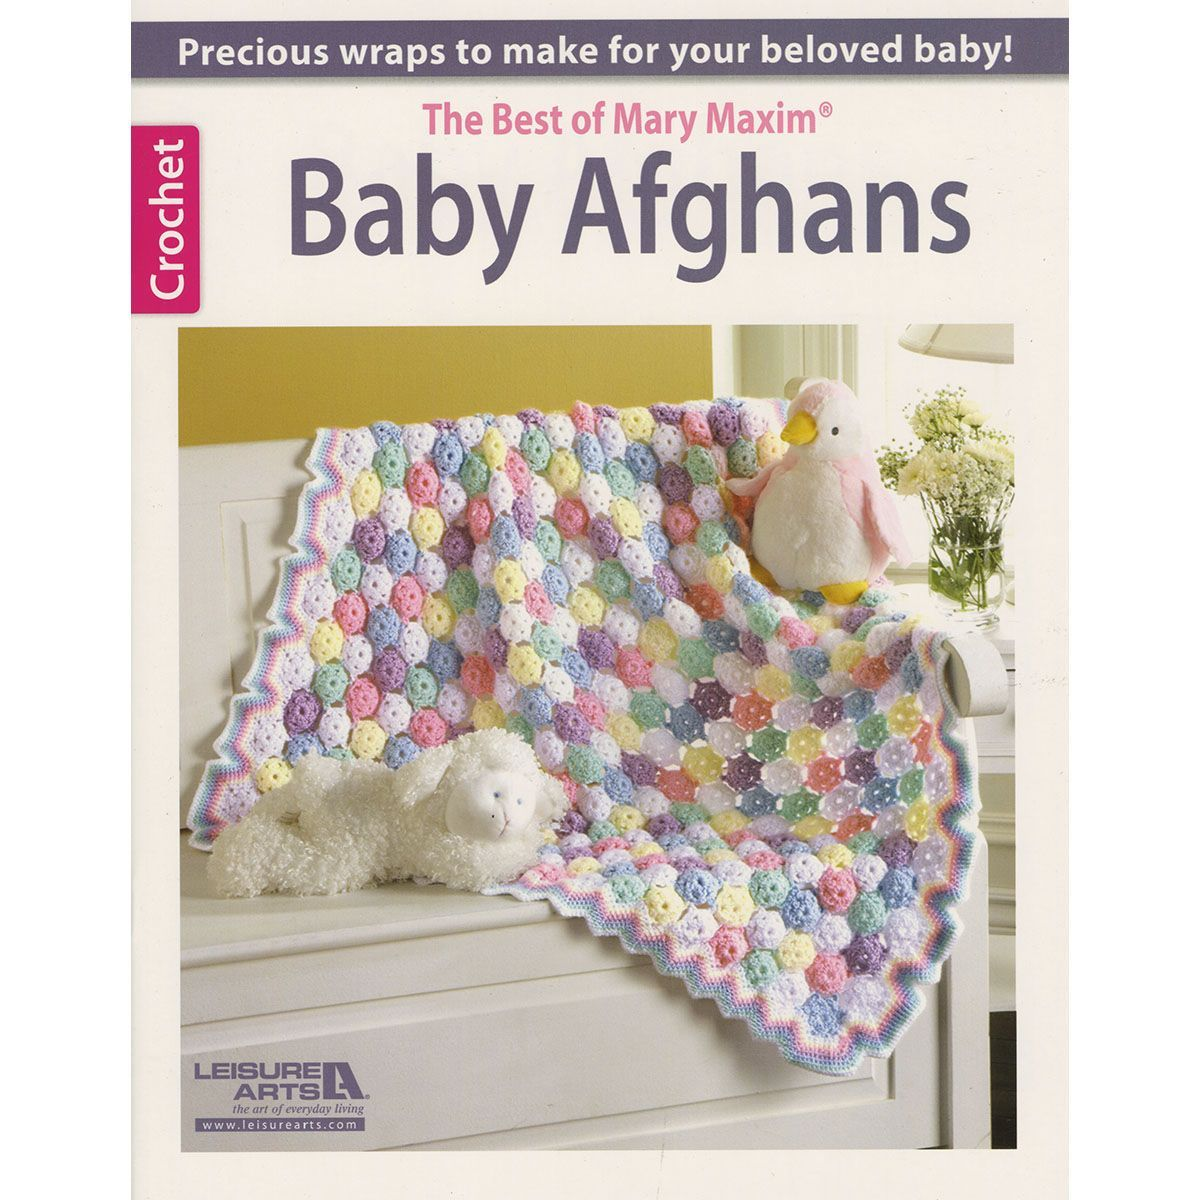 The Best Of Mary Maxim Baby Afghans   Pinterest